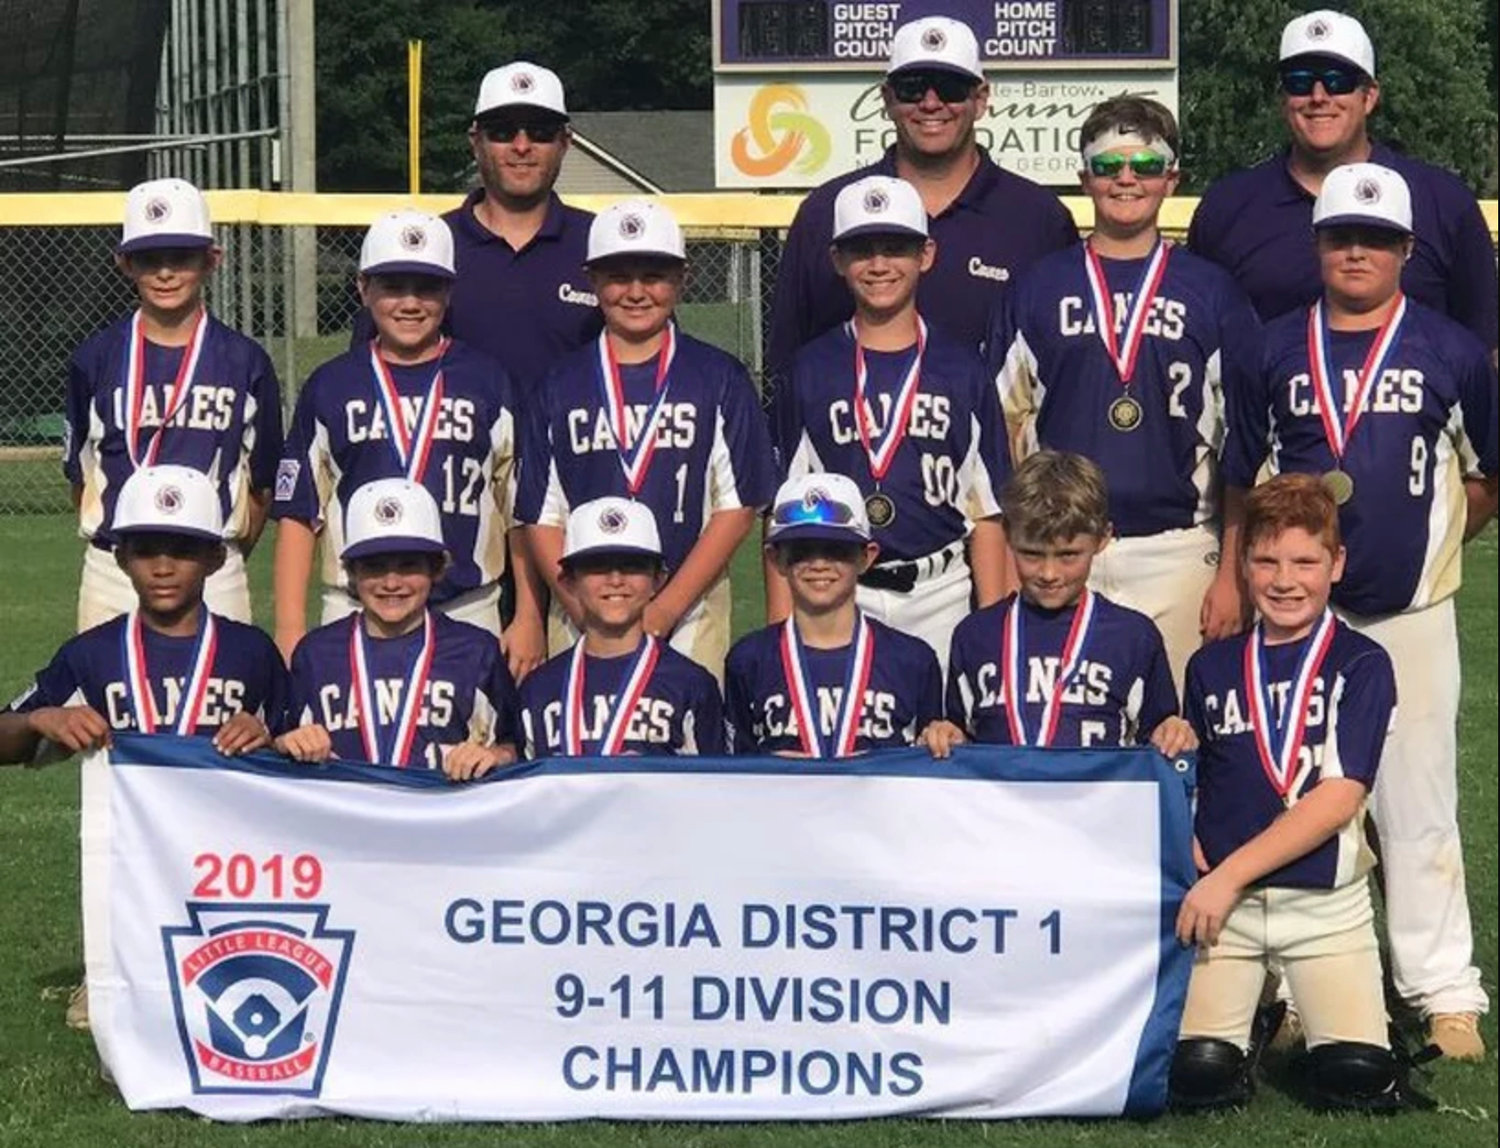 Cartersville finished fourth in the 11U Georgia Little League state baseball tournament in Savannah.